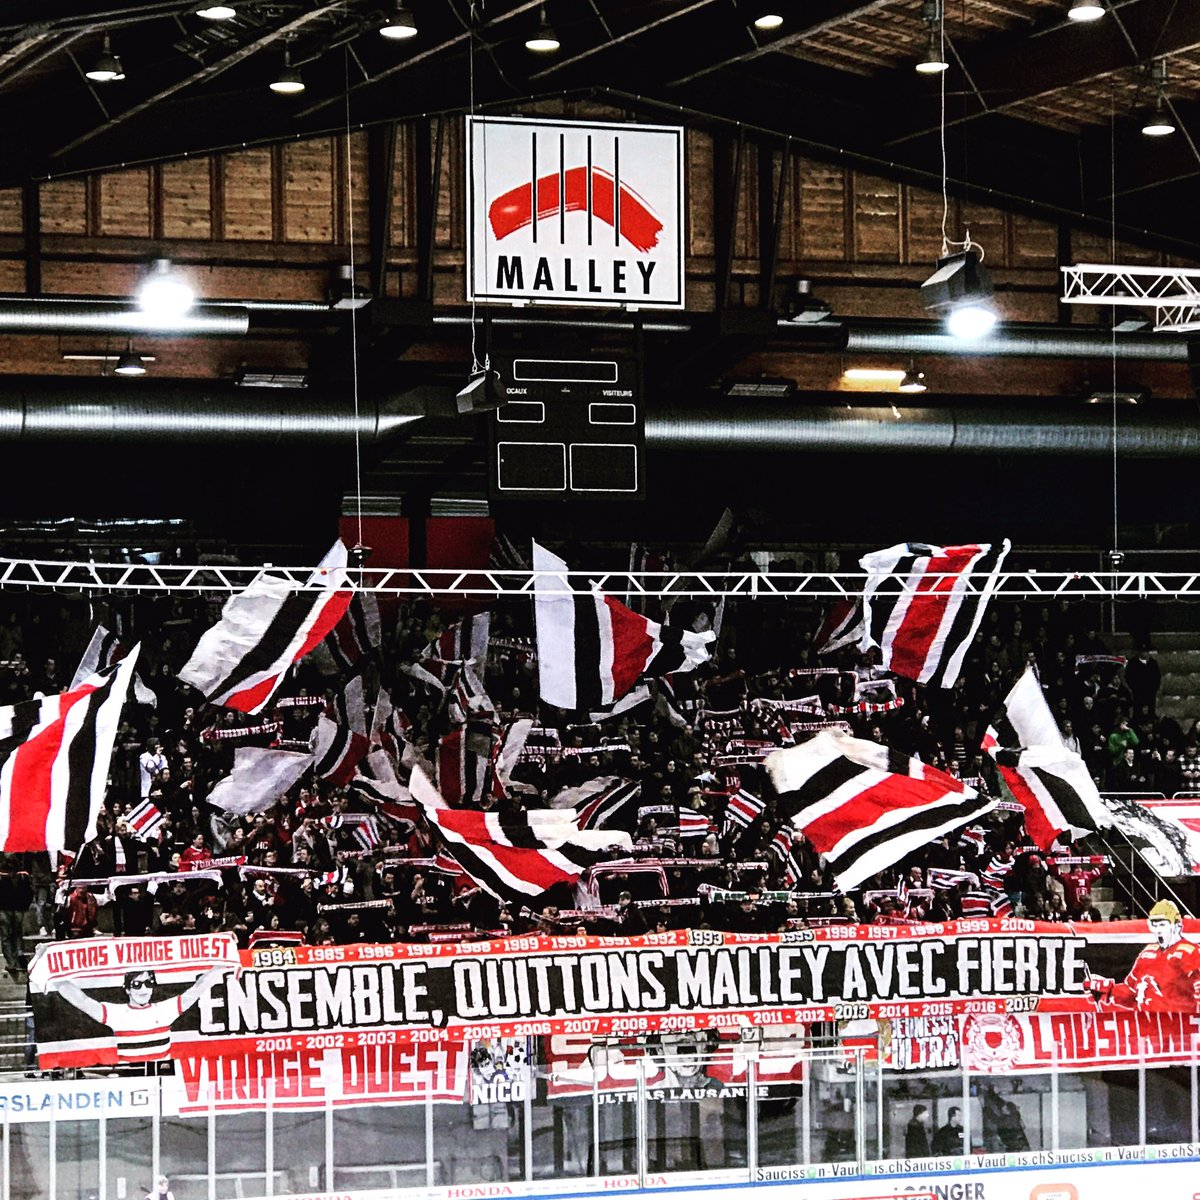 &quot;Ensemble, quittons Malley avec fierté&quot; @lausannehc #hockey #club #sectionouest #virage #kop #ultra #tifo #LHC #lhc1922 #malley #SO93<br>http://pic.twitter.com/kbr0LZVXwL